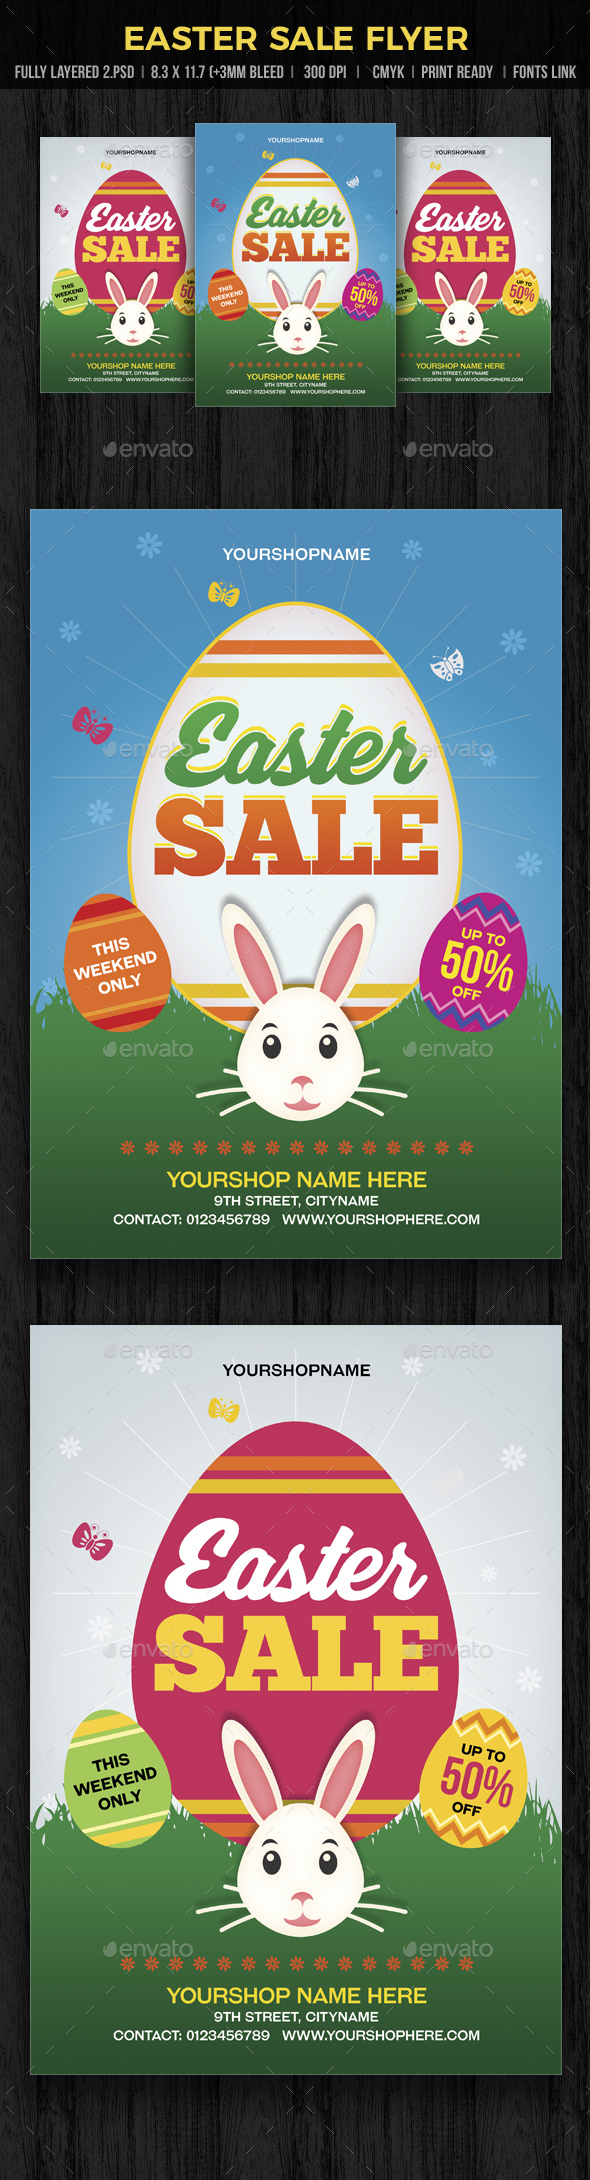 Easter Sale Flyer - Flyers Print Templates